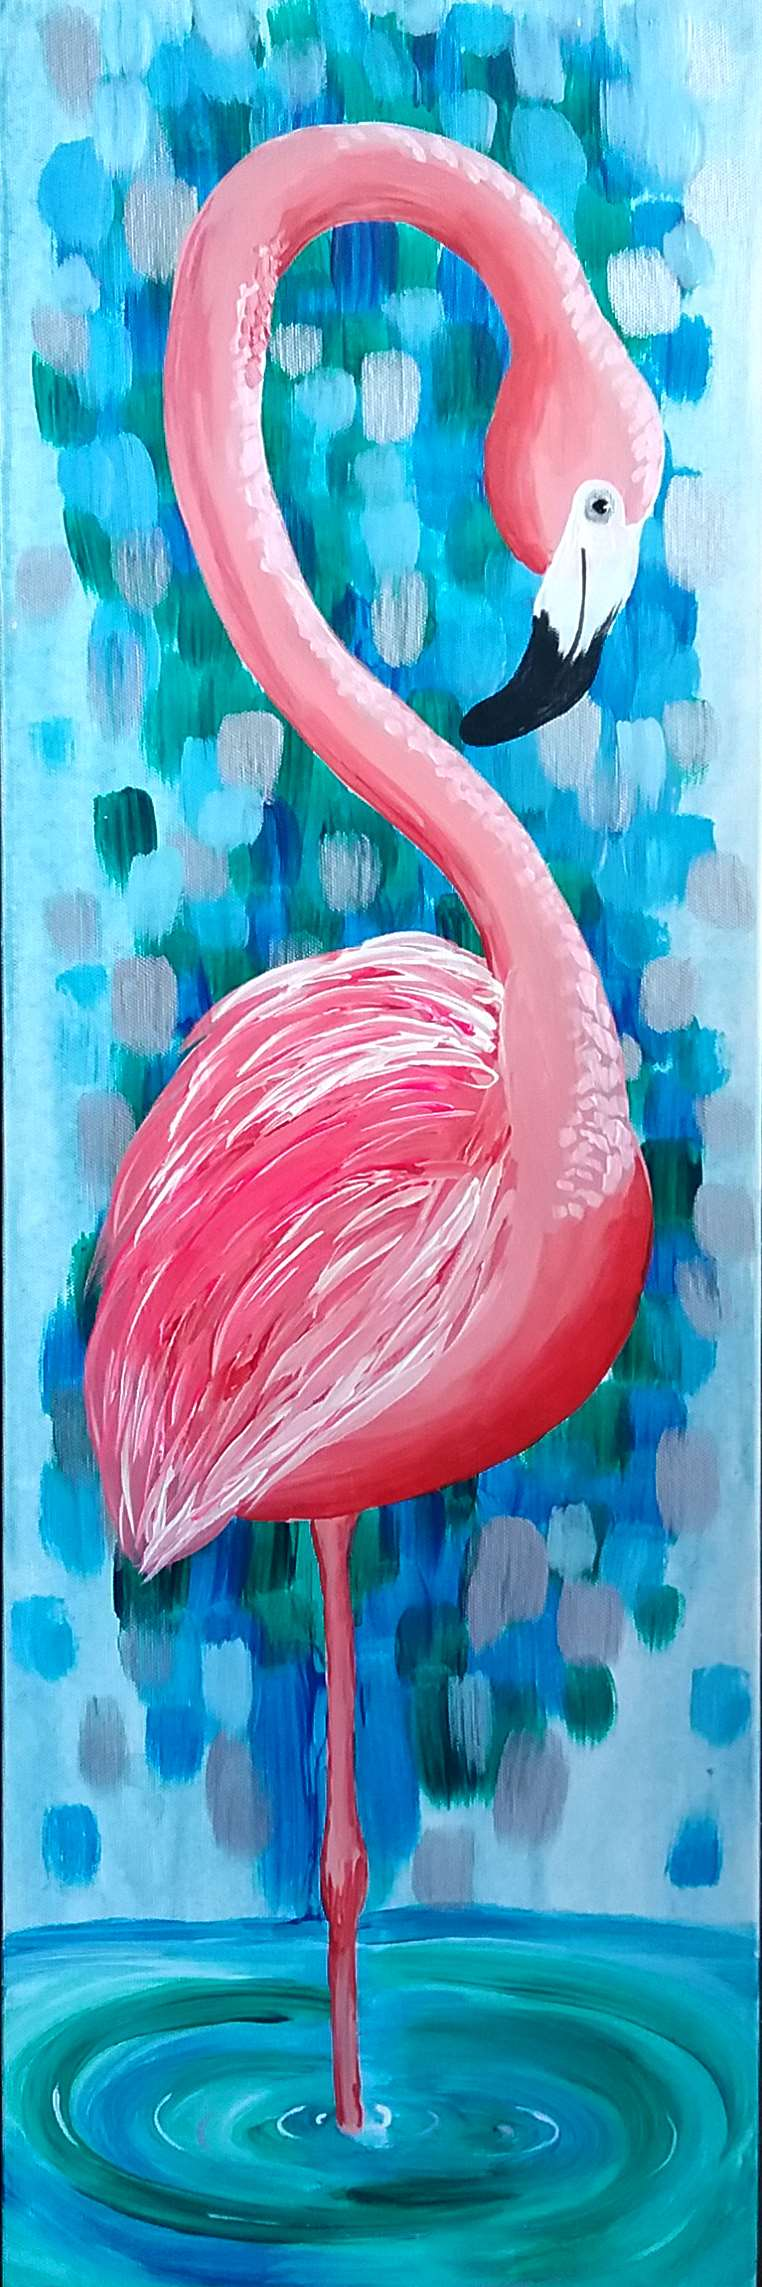 w/ Stencil for Flamingo! Easy painting